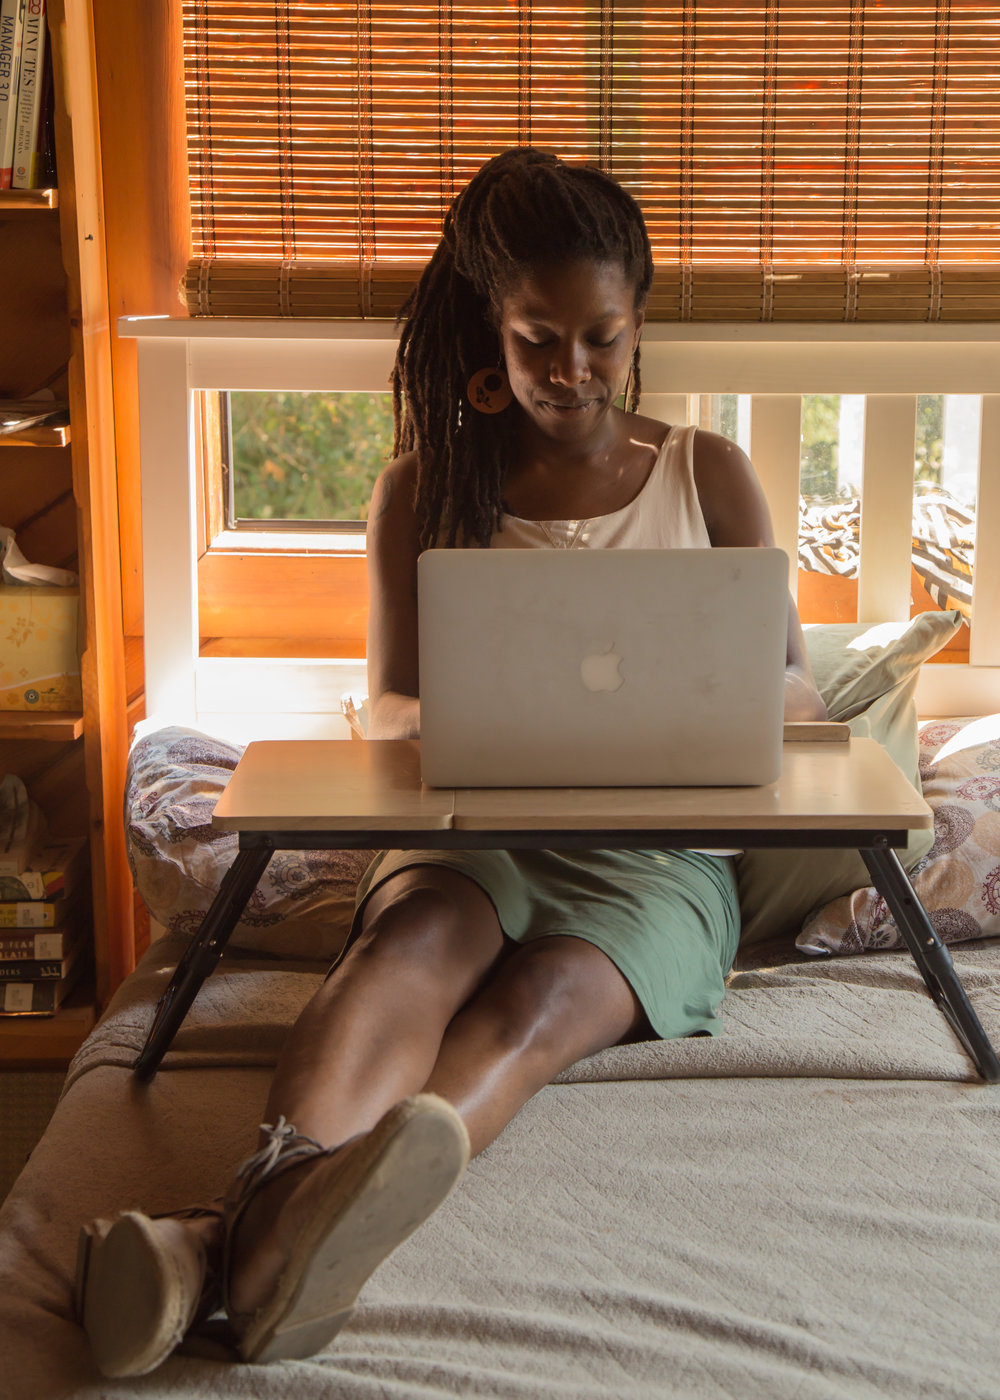 Laura has a BA in psychology and an MA and PhD in Counseling Psychology. When not at work as the Director of Residential and Community Life at the Center for Agroecology and Sustainable Food Systems (CASFS) at UC Santa Cruz, or spending time with family, Laura can be found with her laptop working on her small private practice. She teaches workshops and meditation and does mental health healing work, specifically with the Black community.